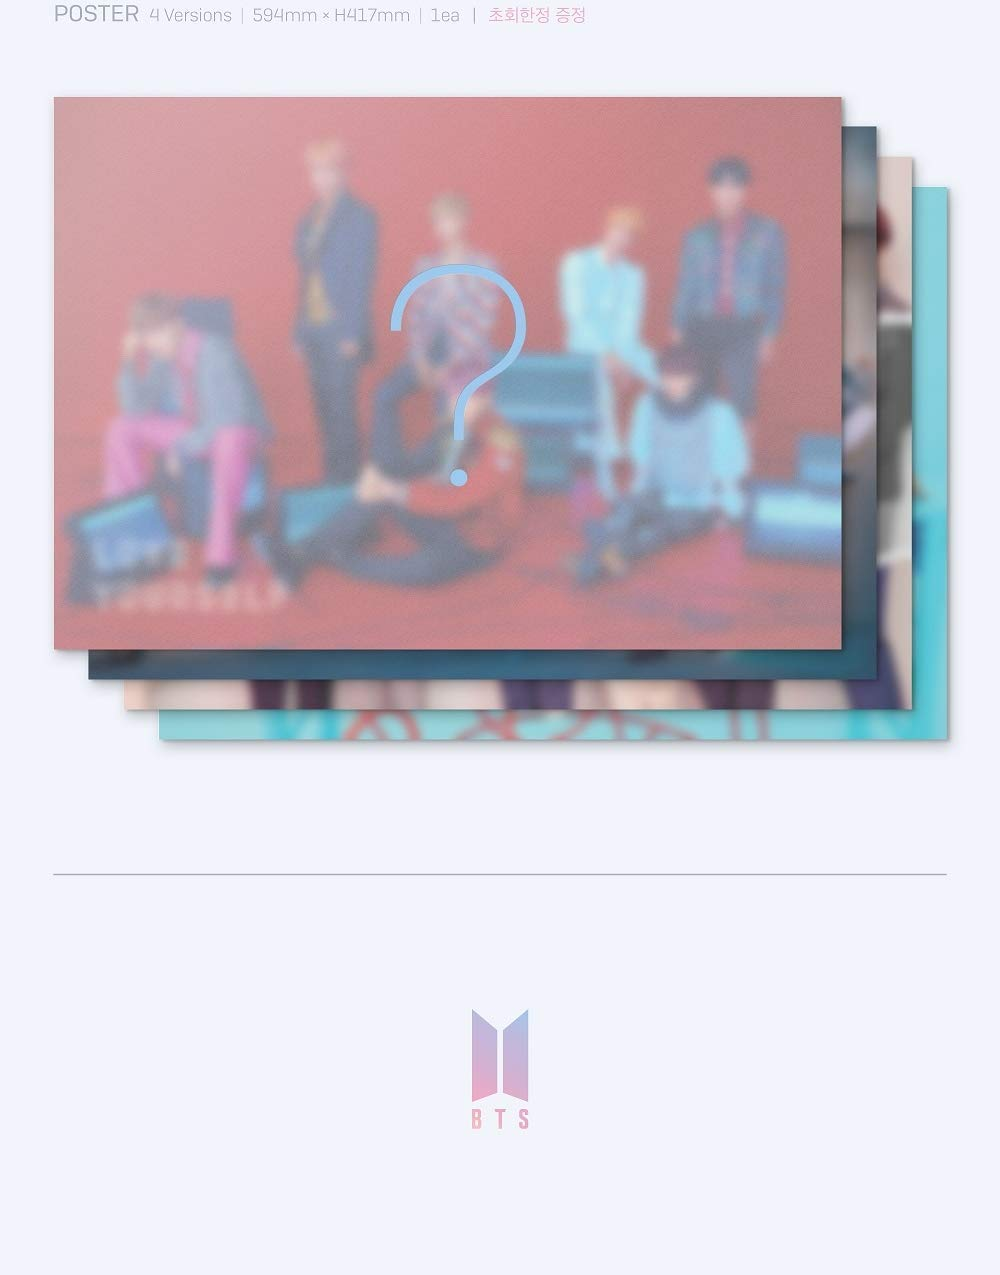 BTS - [Love Yourself 結 'Answer'] 4th Album F VER 2CD+Poster+116p PhotoBook+20p Mini Book+1p PhotoCard+1p Sticker+Pre-Order+Extra PhotoCard Set K-POP Sealed by BTS (Image #1)